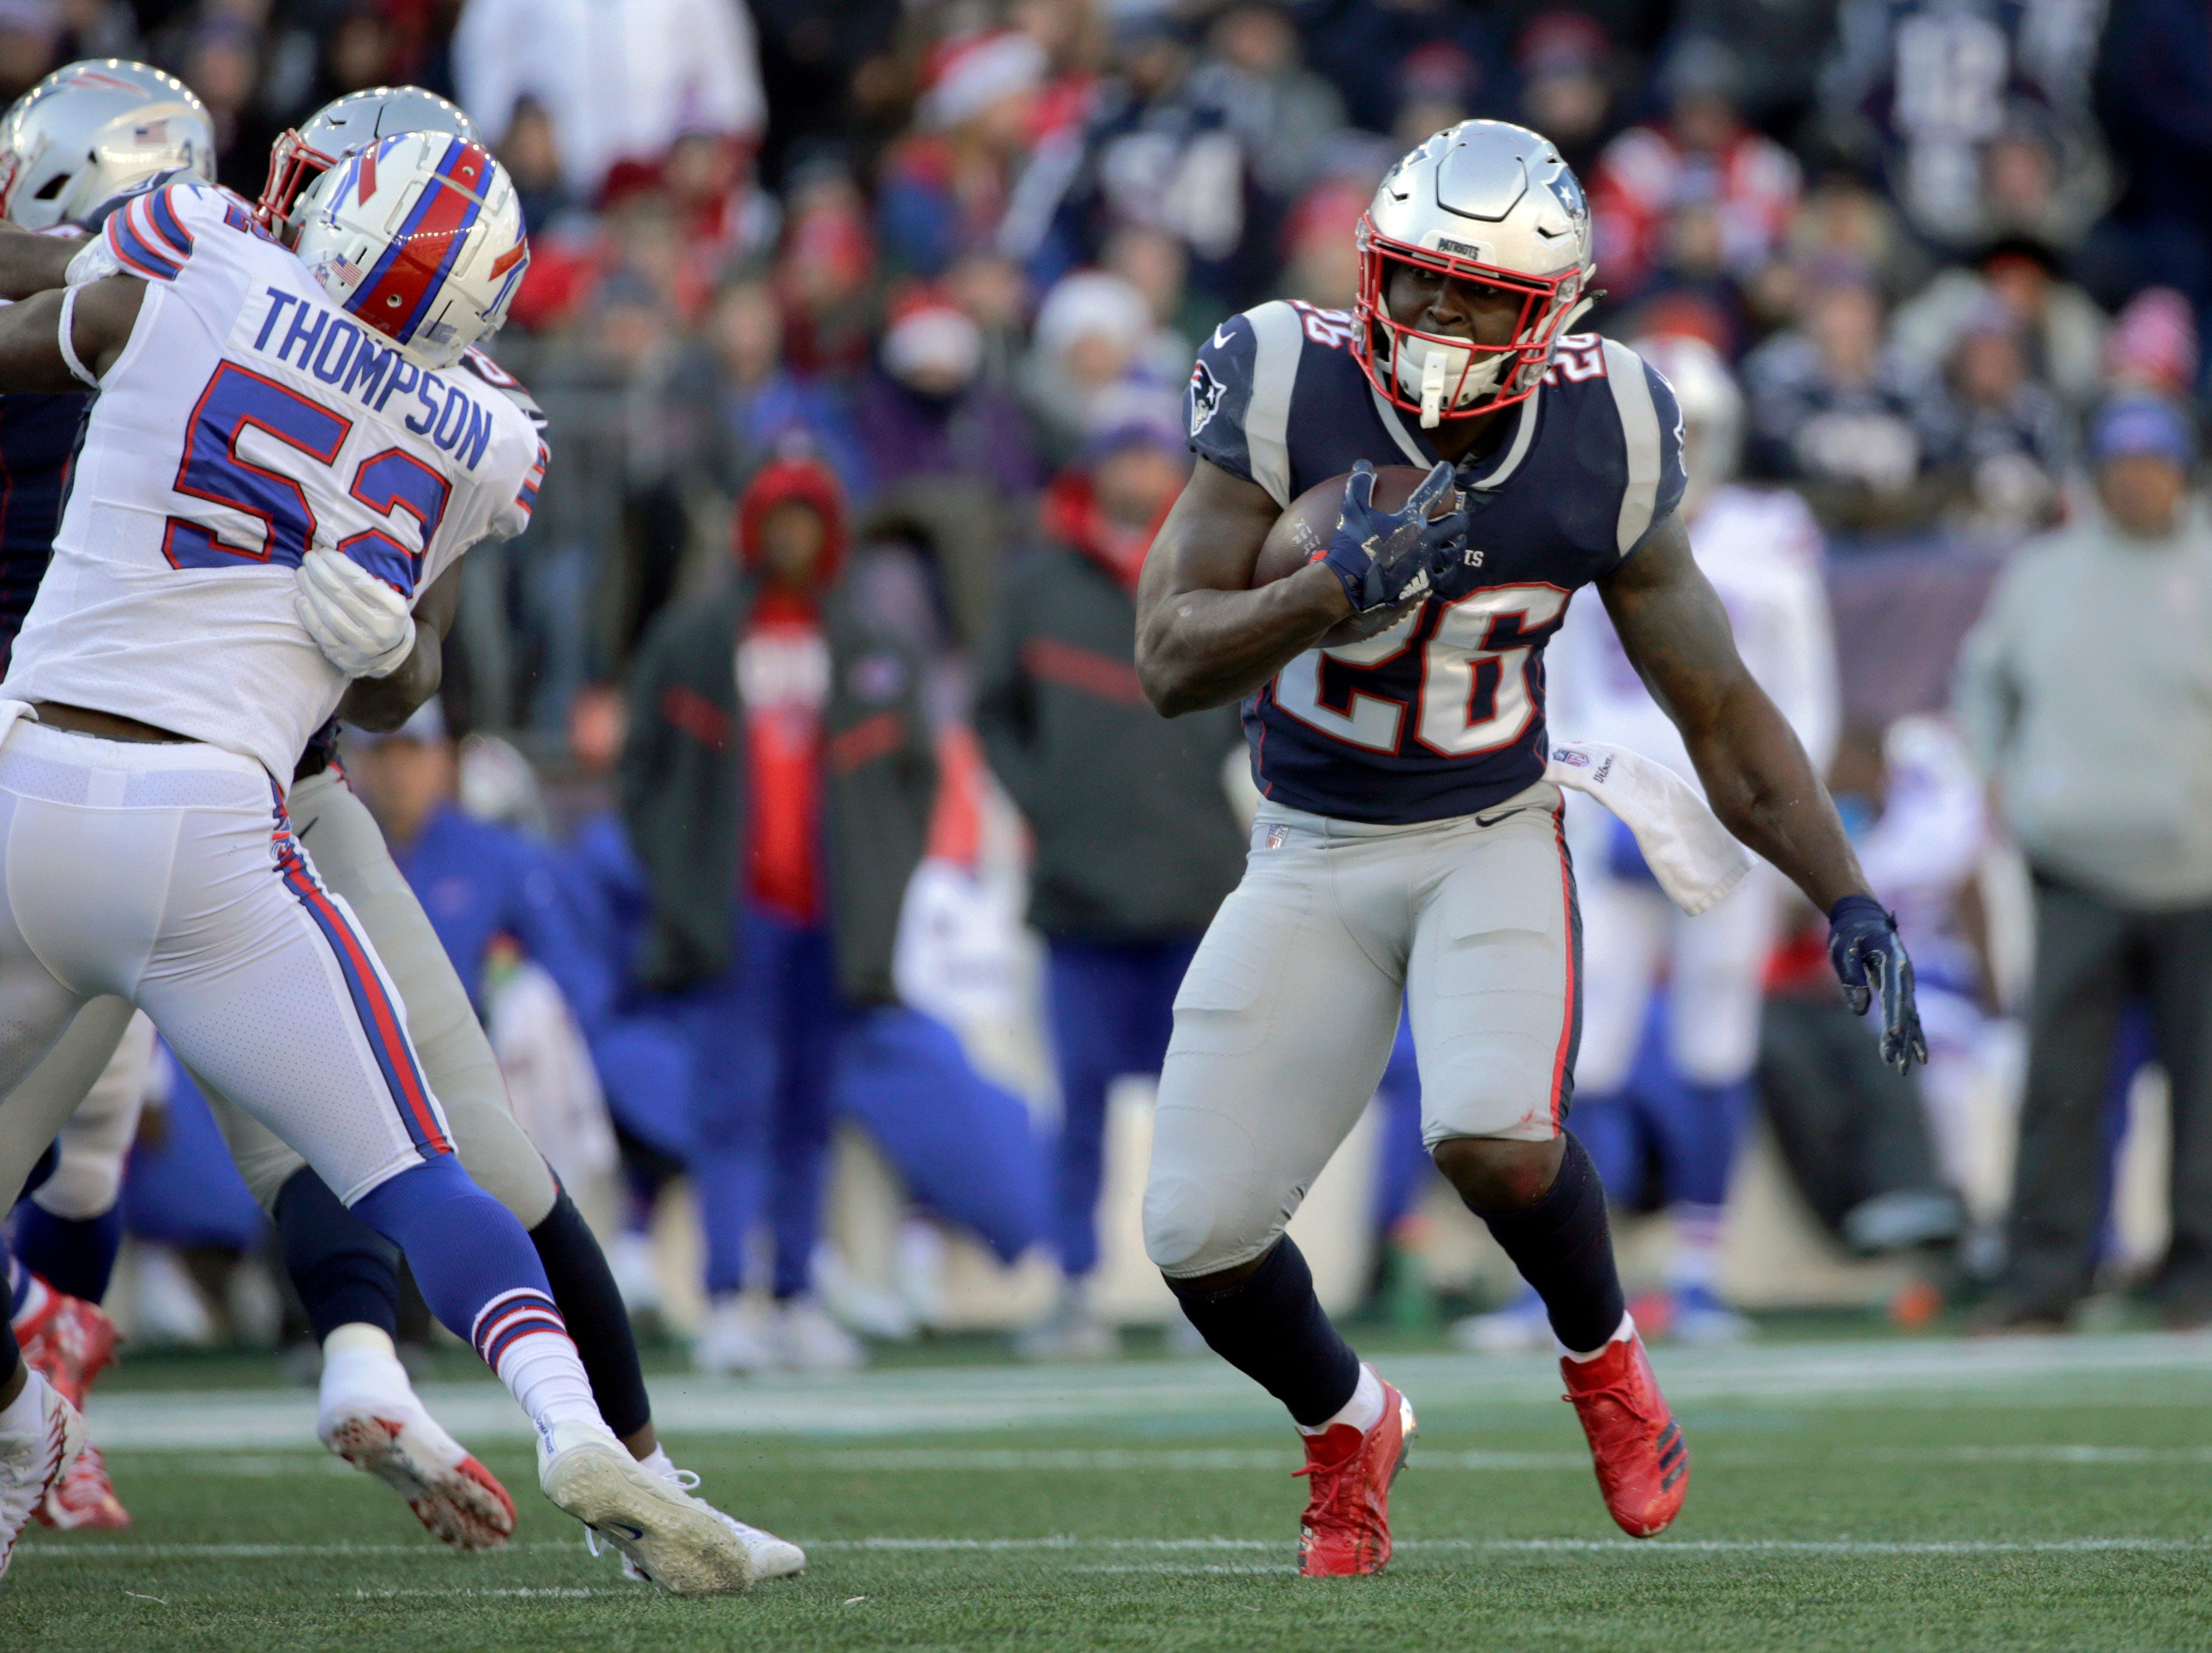 New England Patriots running back Sony Michel gains yardage against the Buffalo Bills during the first half of an NFL football game, Sunday, Dec. 23, 2018, in Foxborough, Mass. (AP Photo/Elise Amendola)